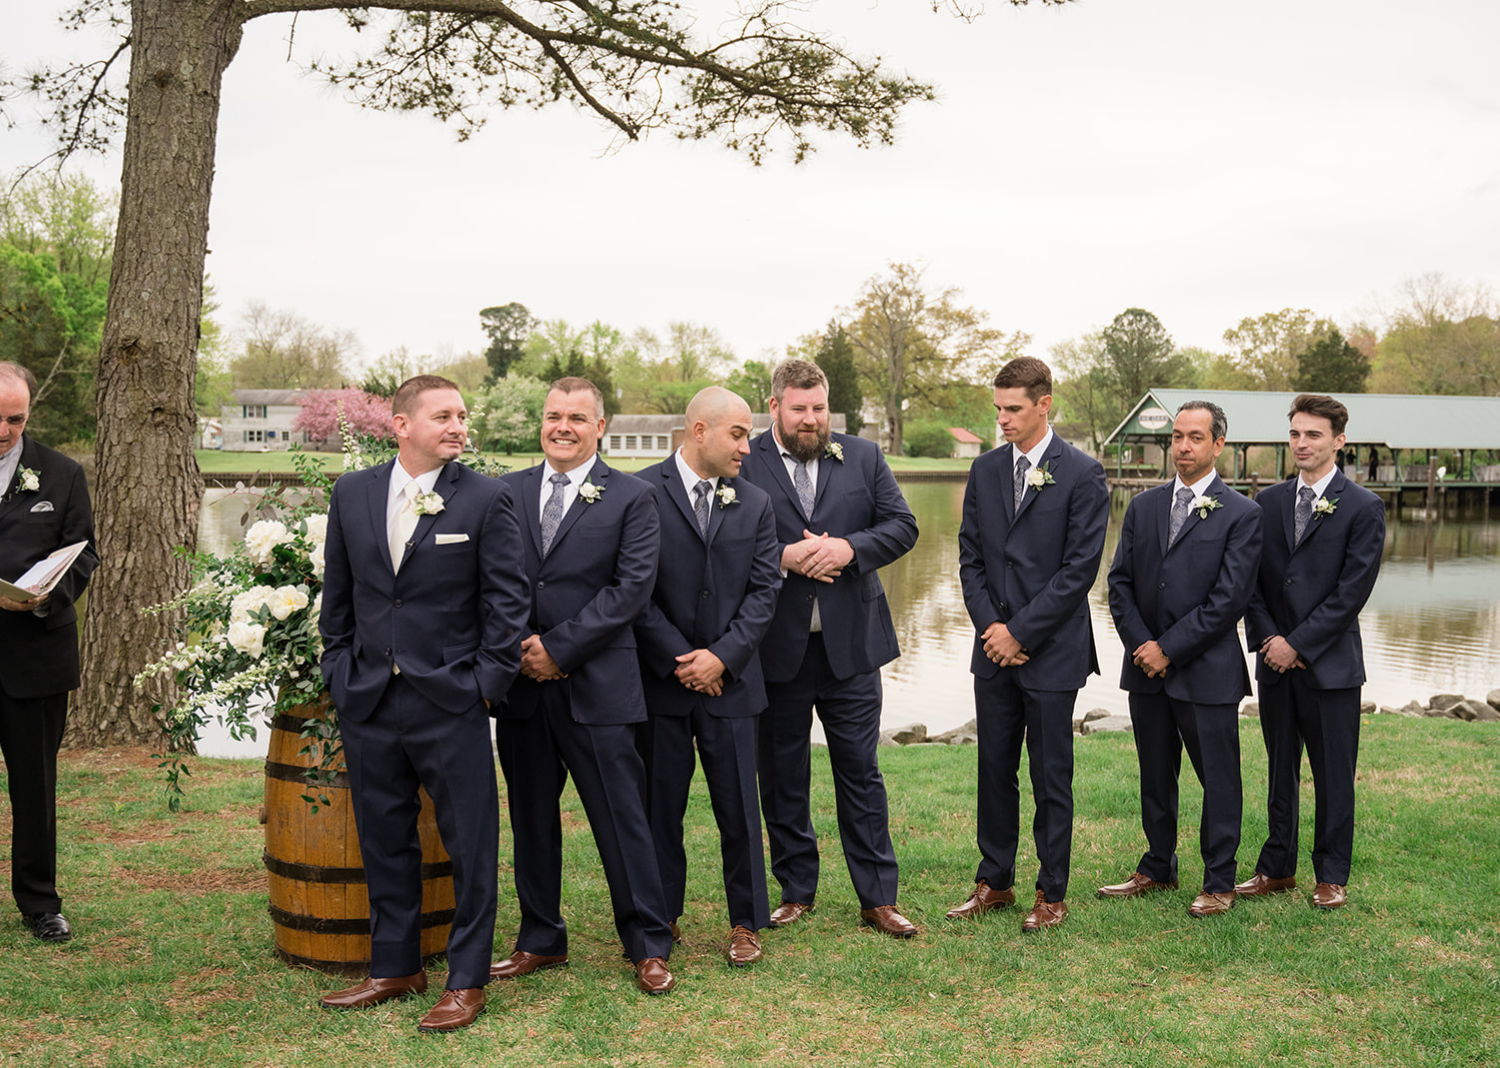 groom and groomsmen stand waiting for the bride during their wedding ceremony